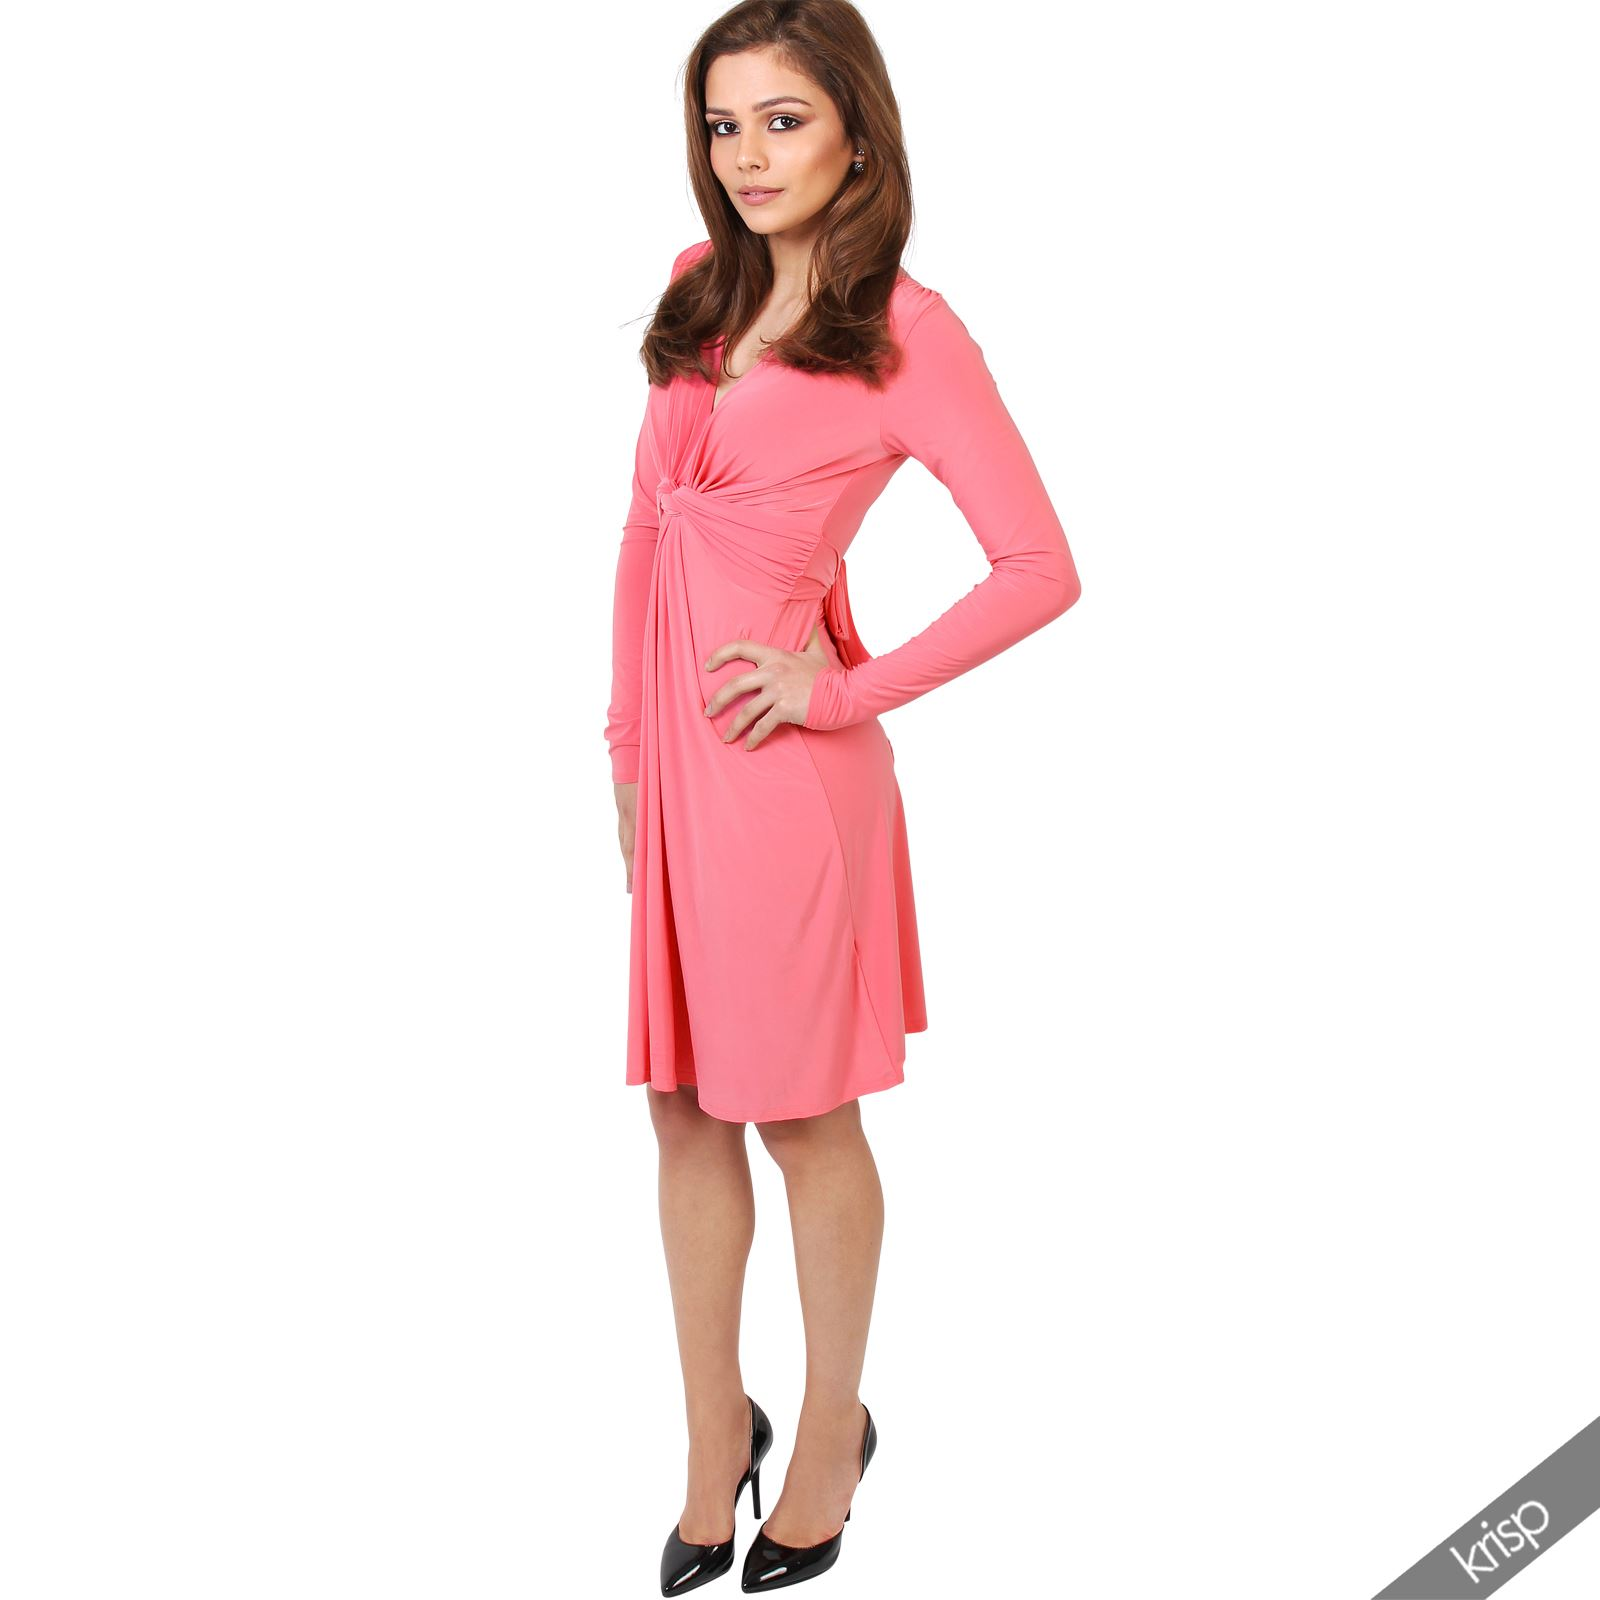 Womens-Ladies-V-Neck-Dress-Knee-Length-Mini-Ruched-Pleated-Swing-Top-Party thumbnail 34